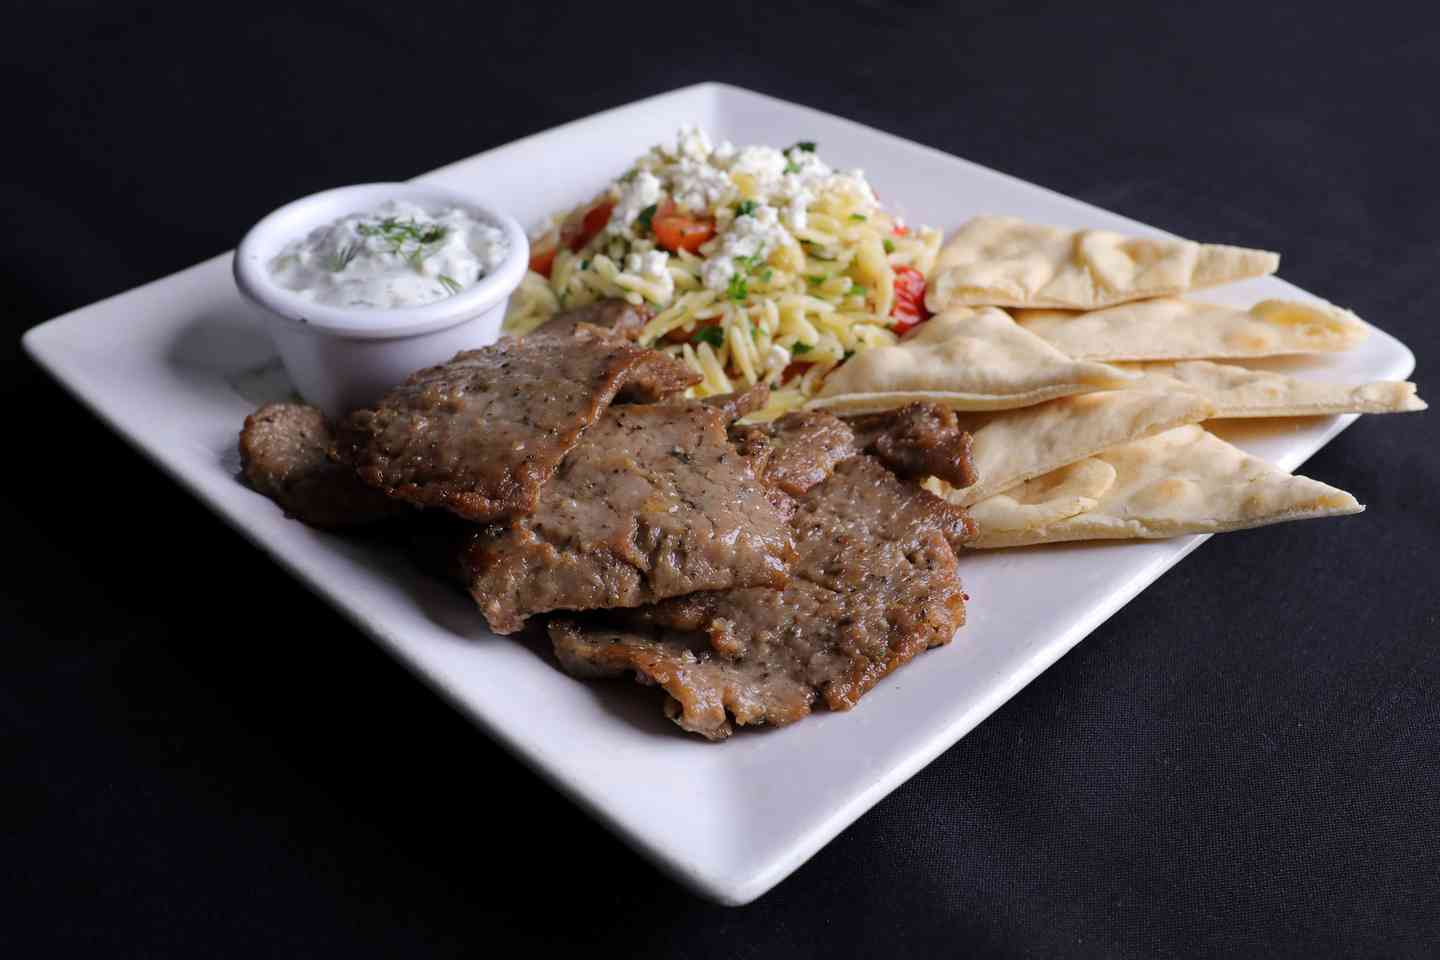 Greek Gyro Plate